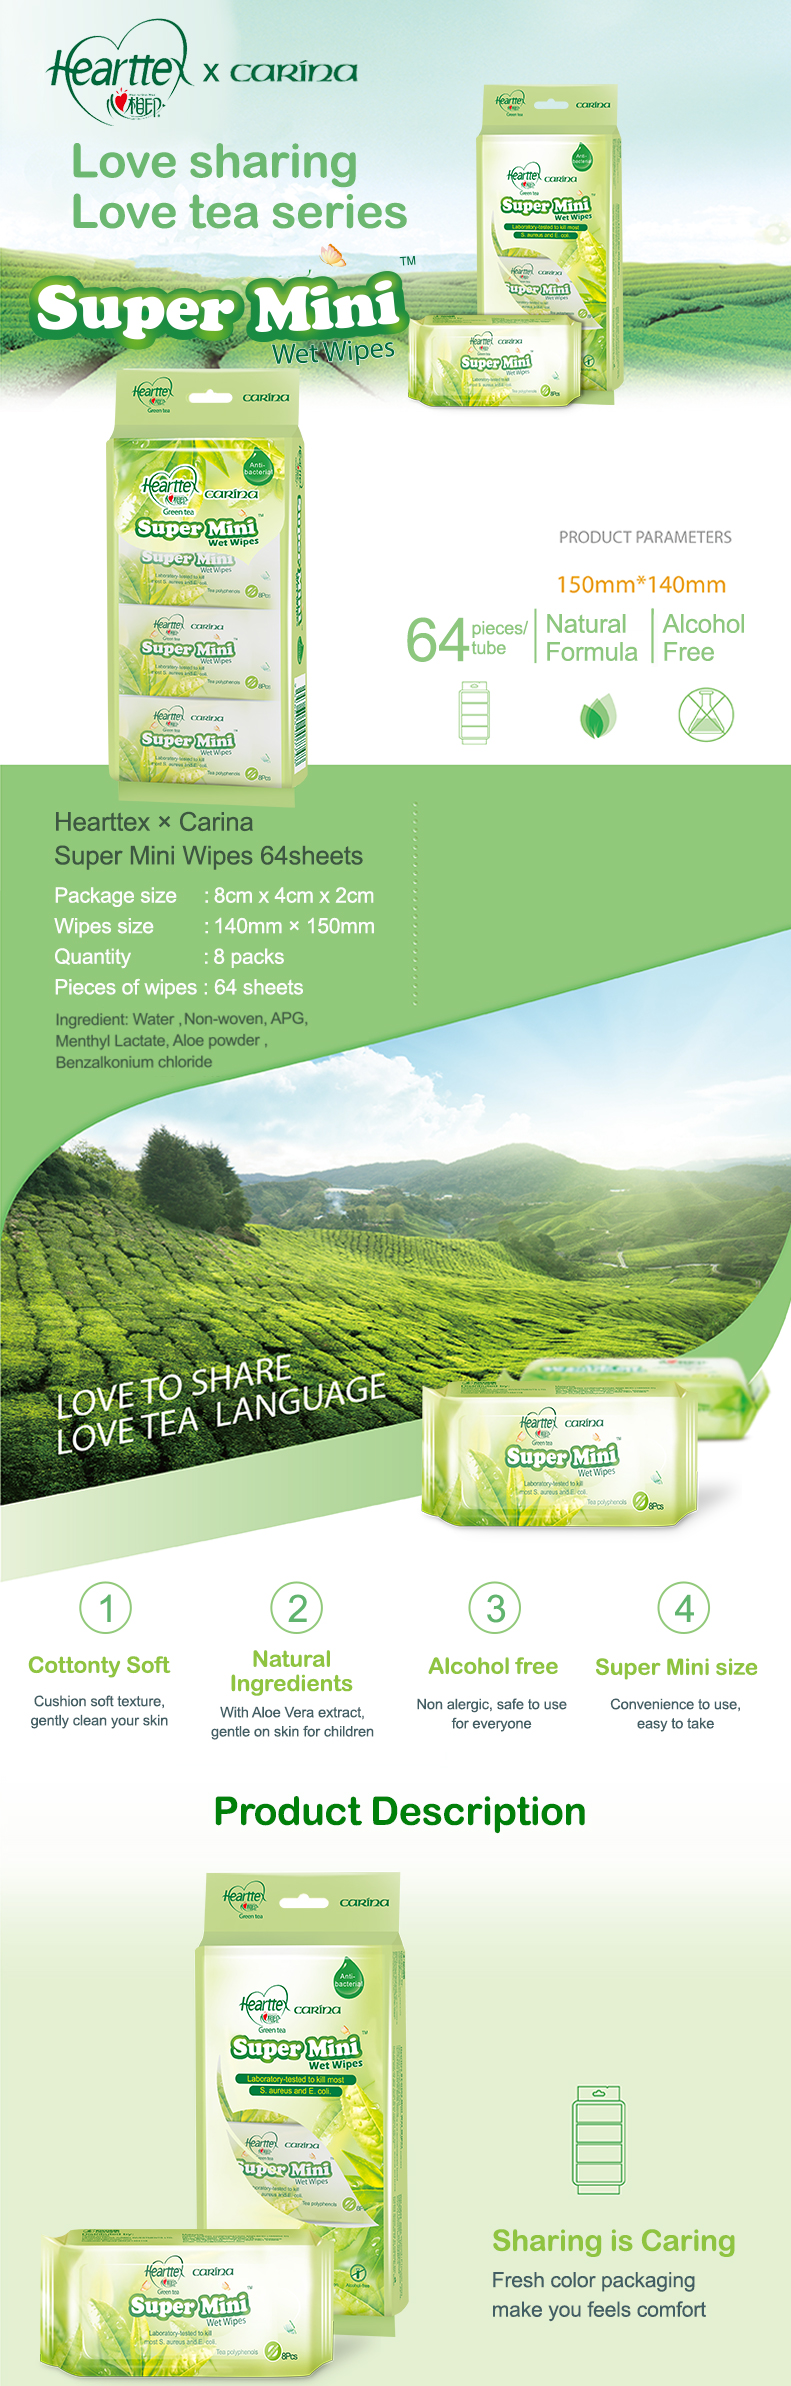 Hearttex Super Mini Wipes 8's x 4 tube - TEA SERIES